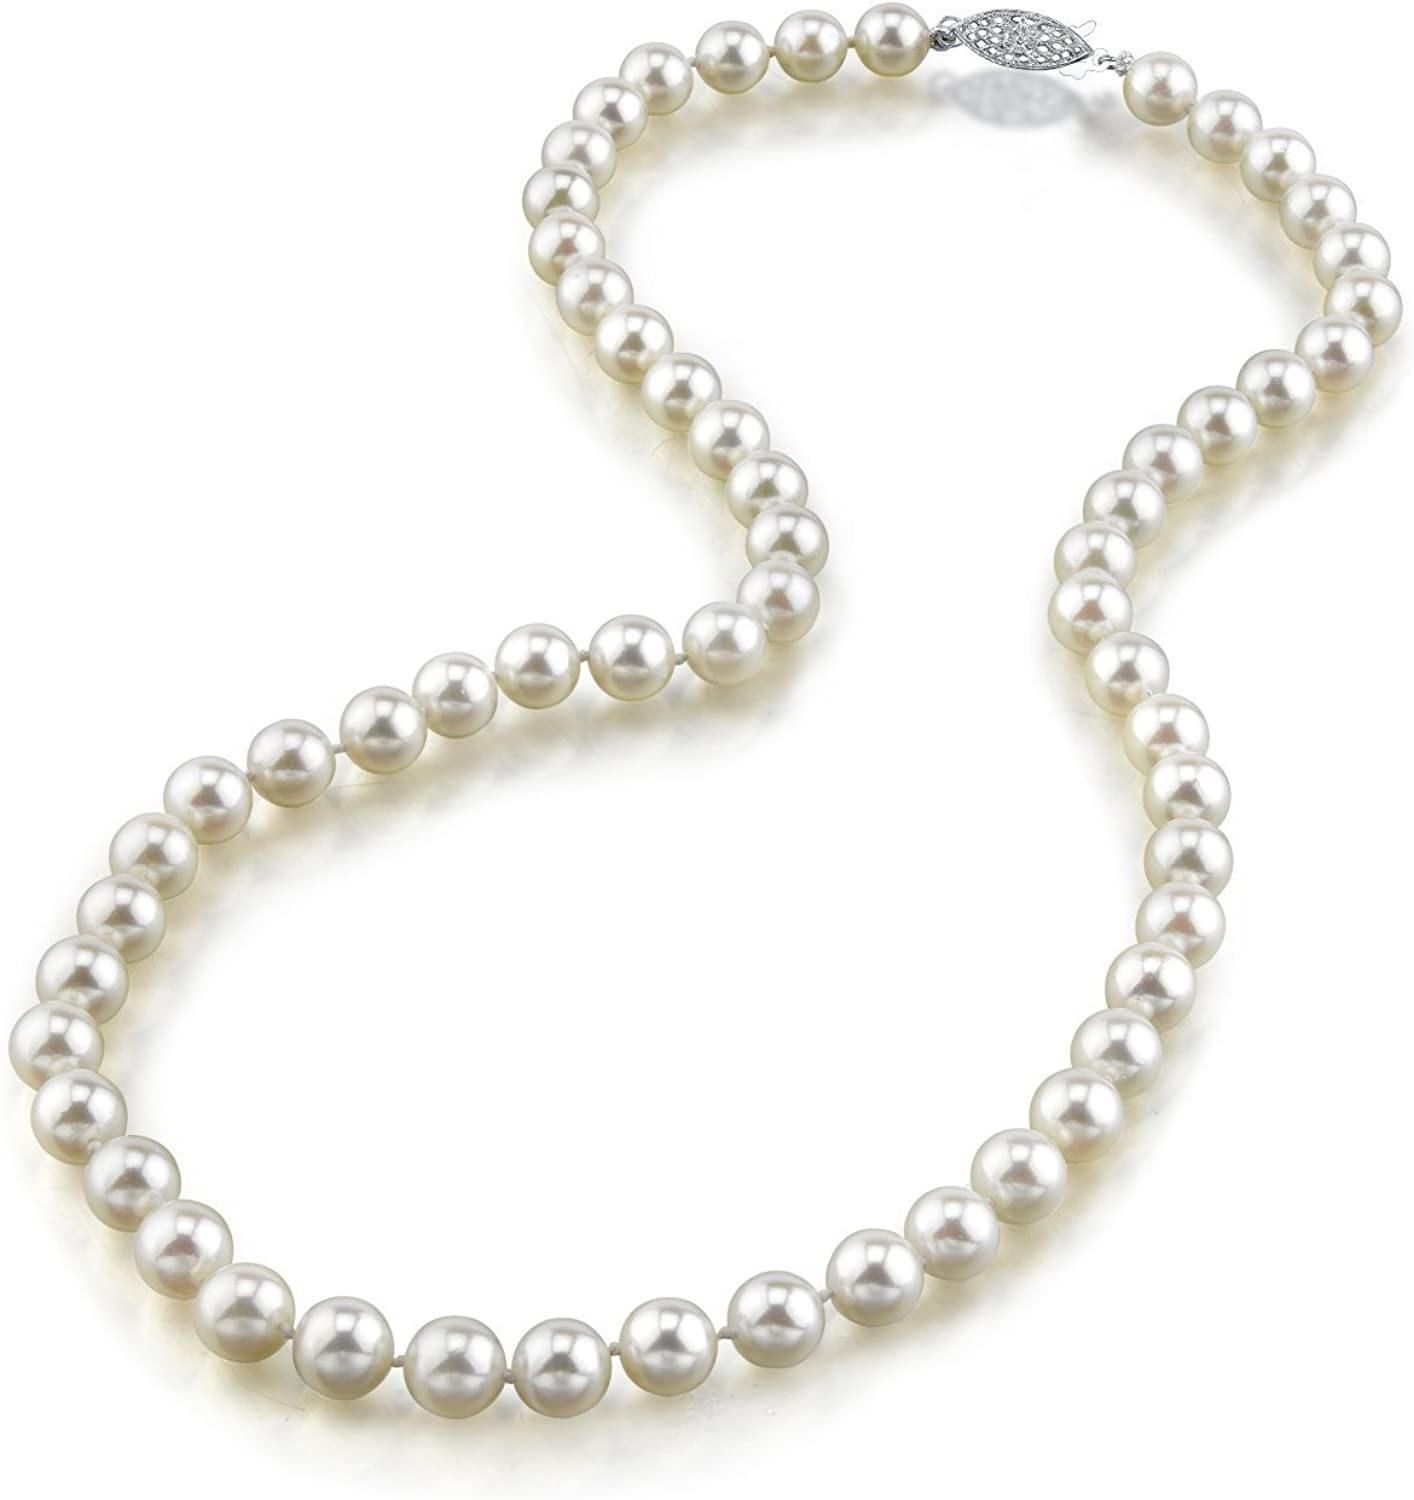 THE PEARL SOURCE 14K Gold 6.0-6.5mm Round Genuine White Japanese Akoya Saltwater Cultured Pearl Necklace in 24